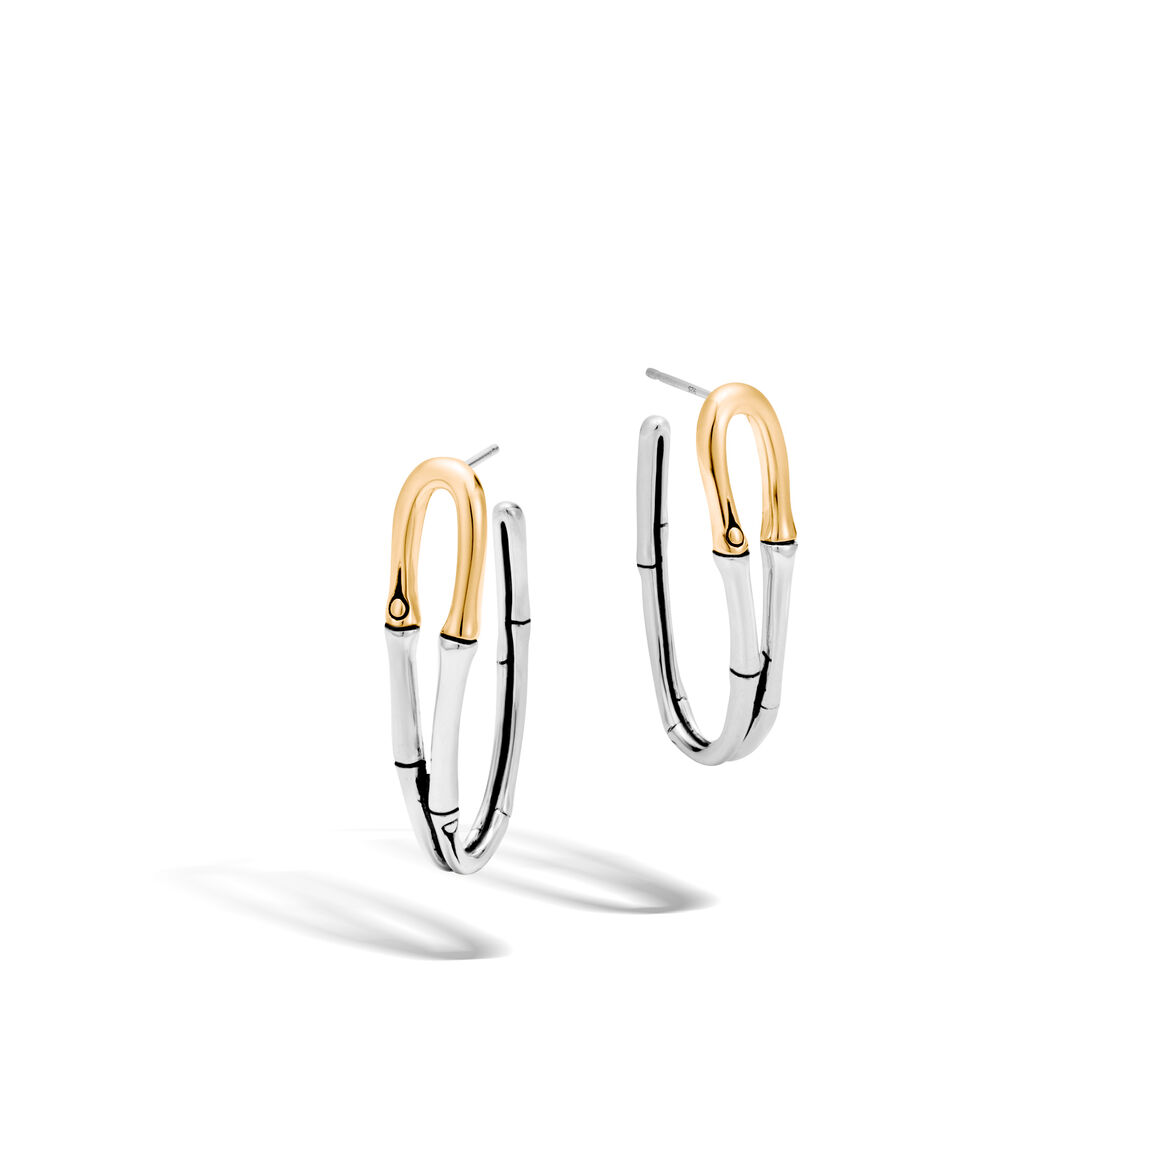 Bamboo Medium J Hoop Earring in Silver and 18K Gold